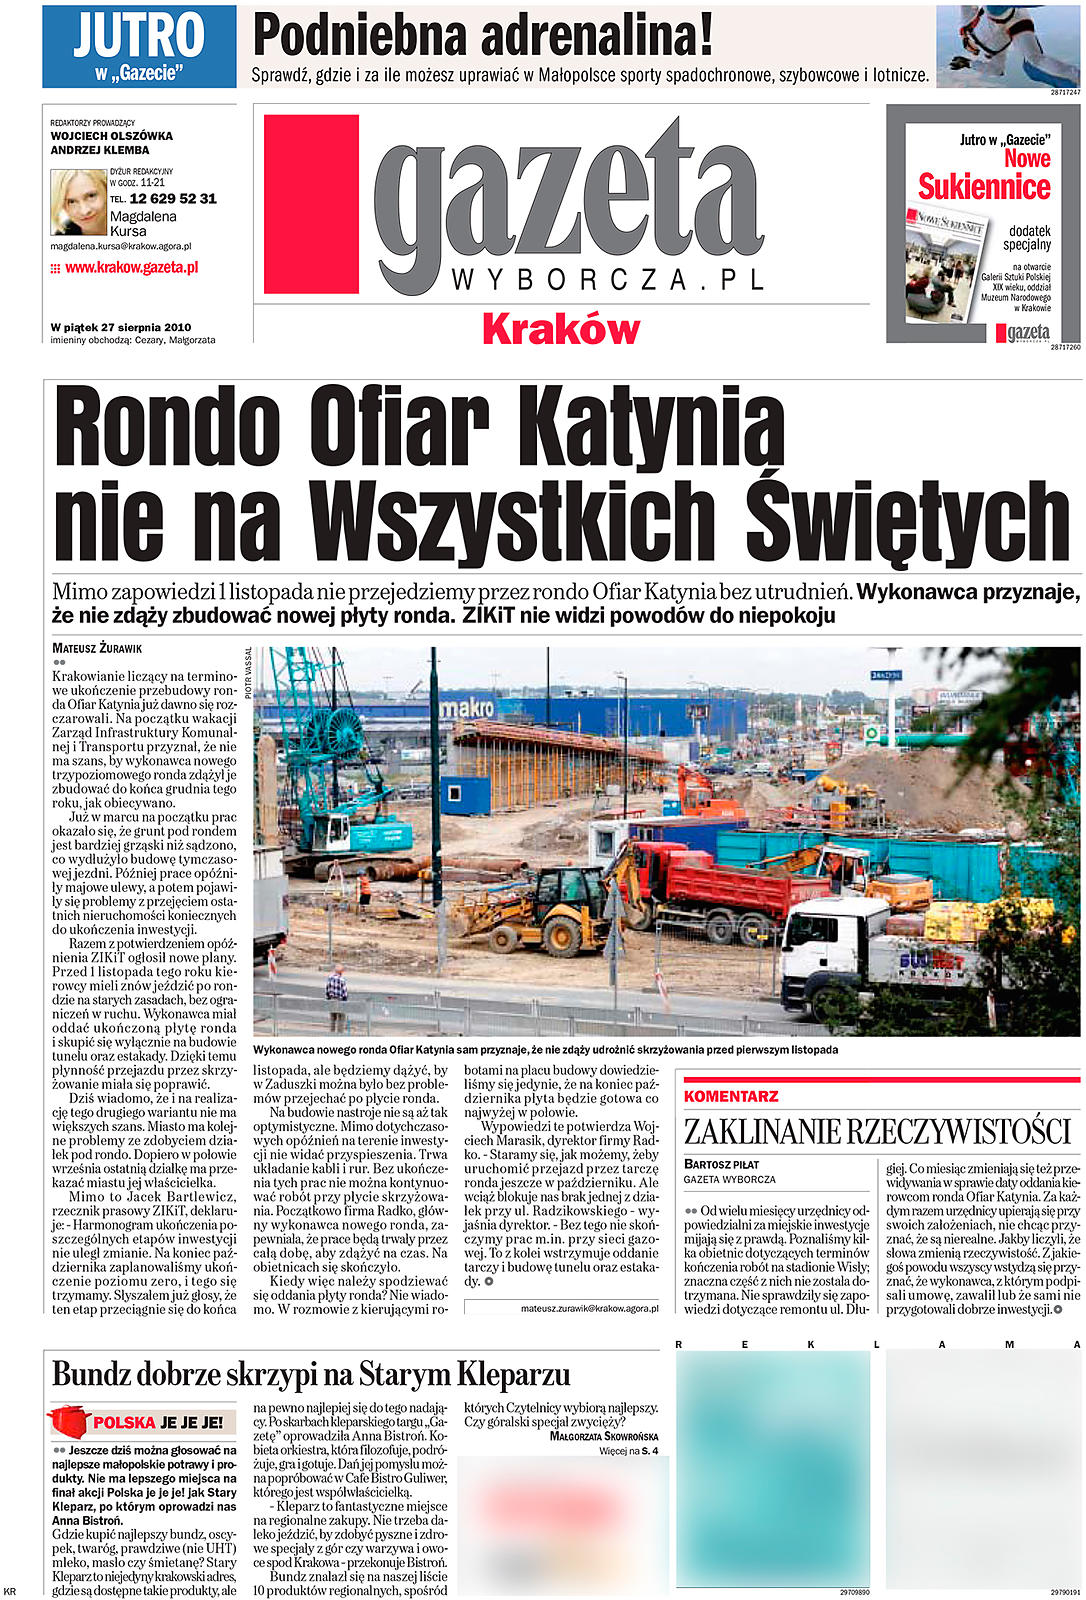 DLO_KR_27_08:Krakow.qxd PS-FILE: job-10.31.29.125-499469.ps